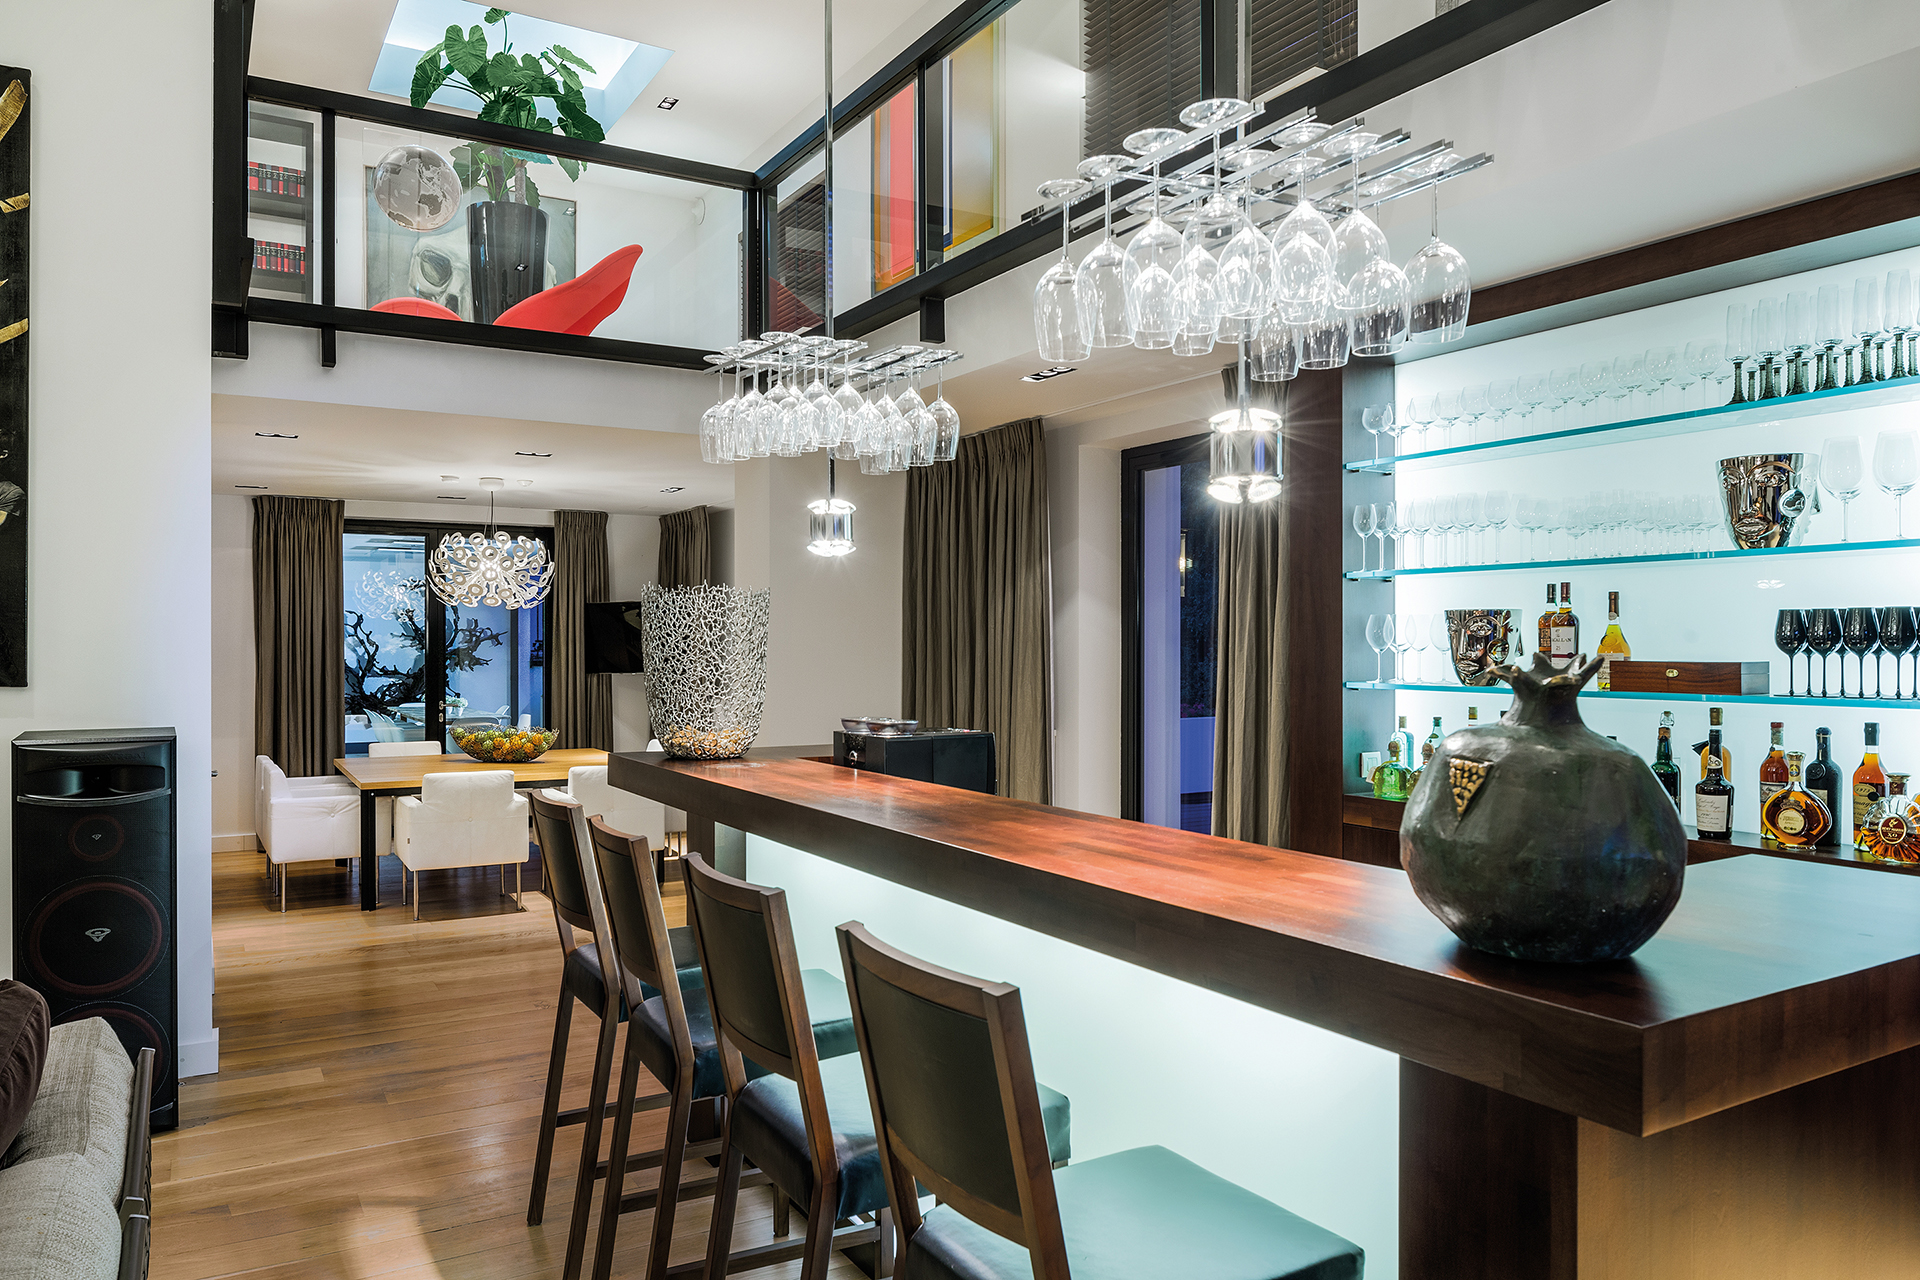 A home bar with lit drinks cabinet and overhanging glass holder